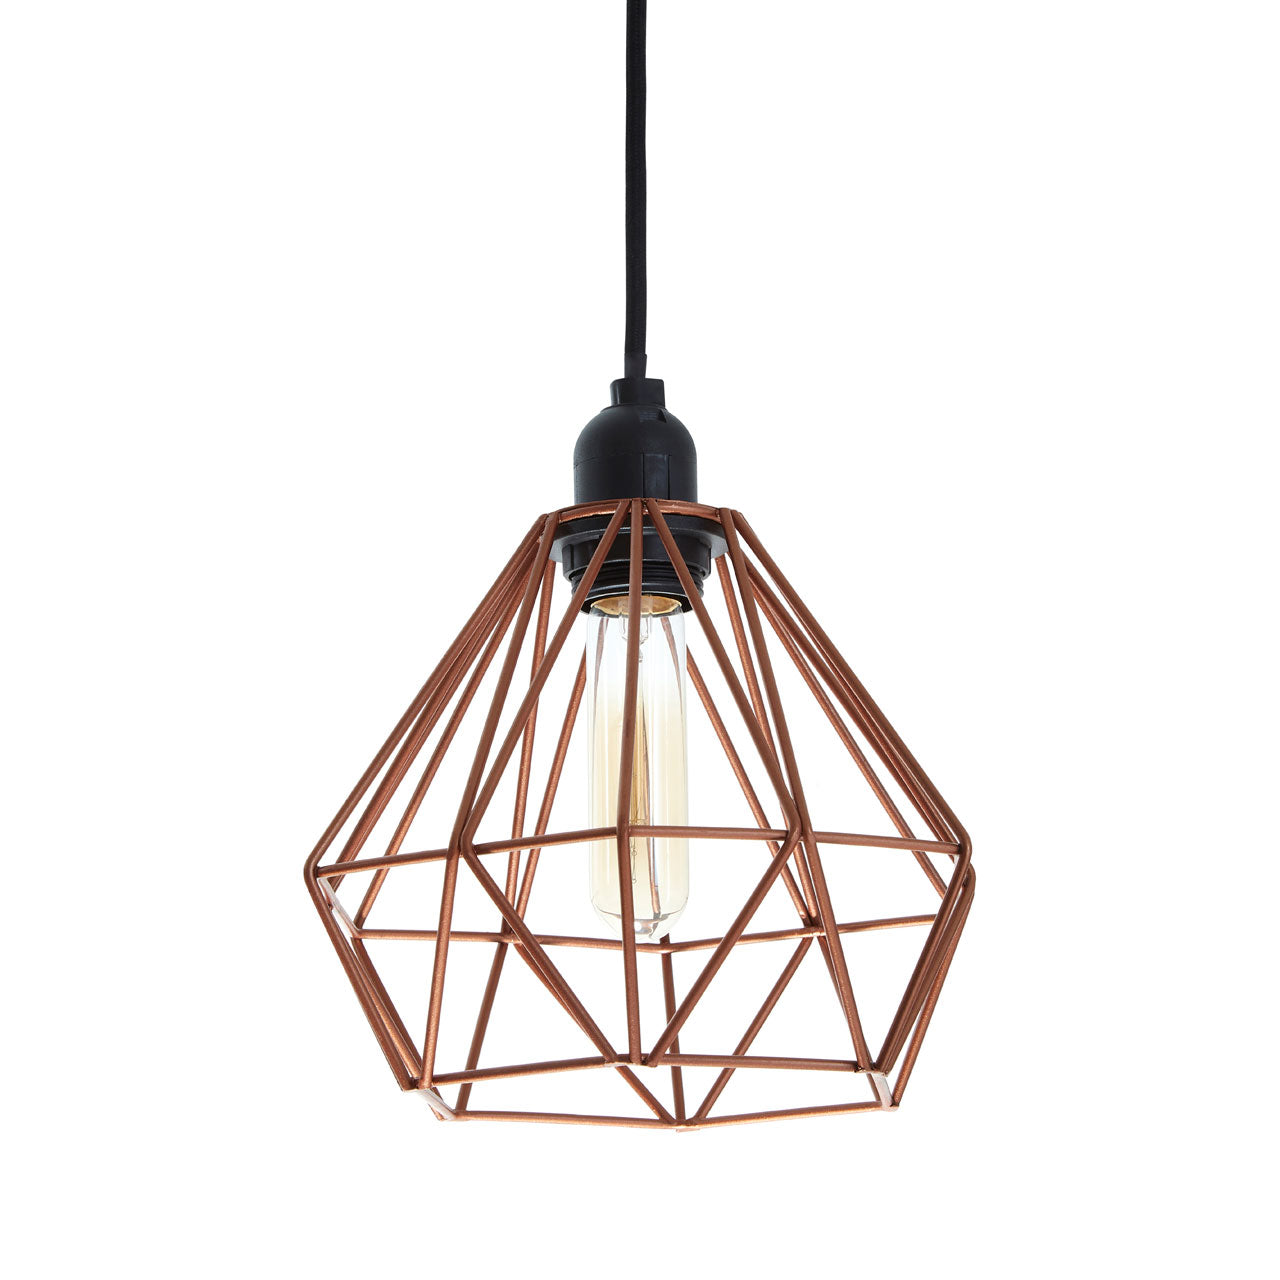 Bartol Pendant Light Copper - Ezzo